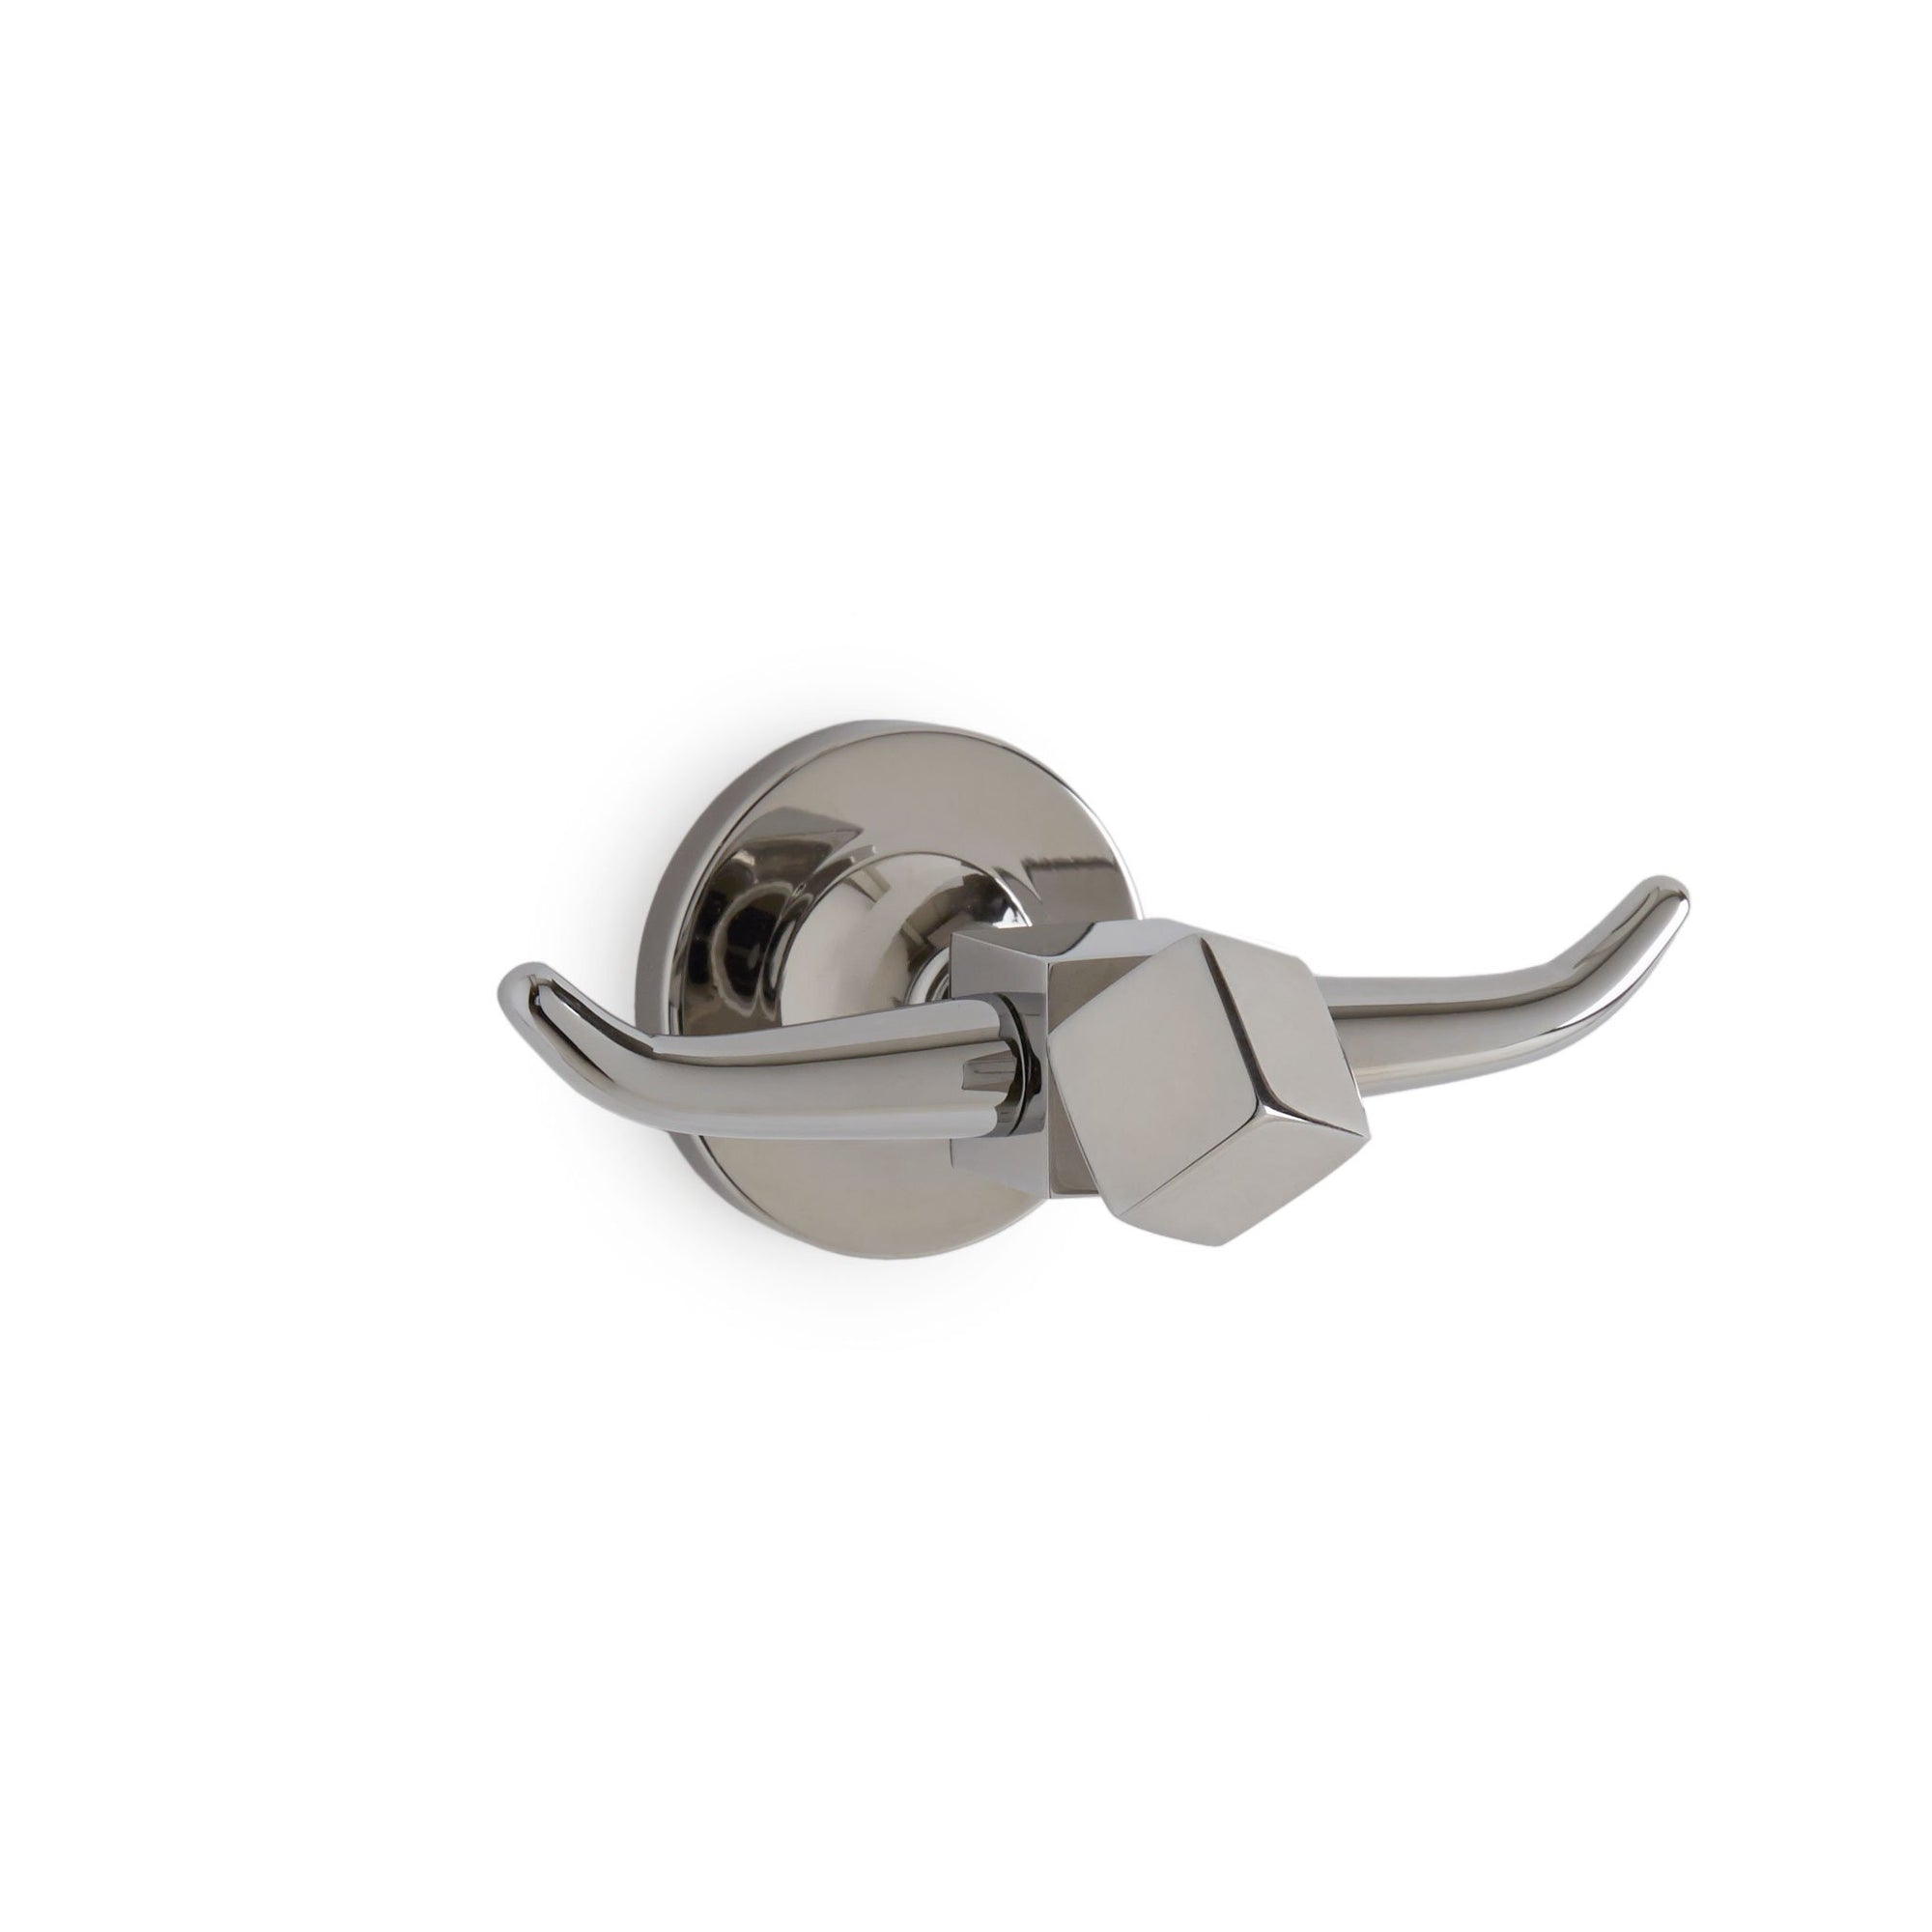 3410-CP Sherle Wagner International Tangent Crystal Fluted Hook in Polished Chrome metal finish